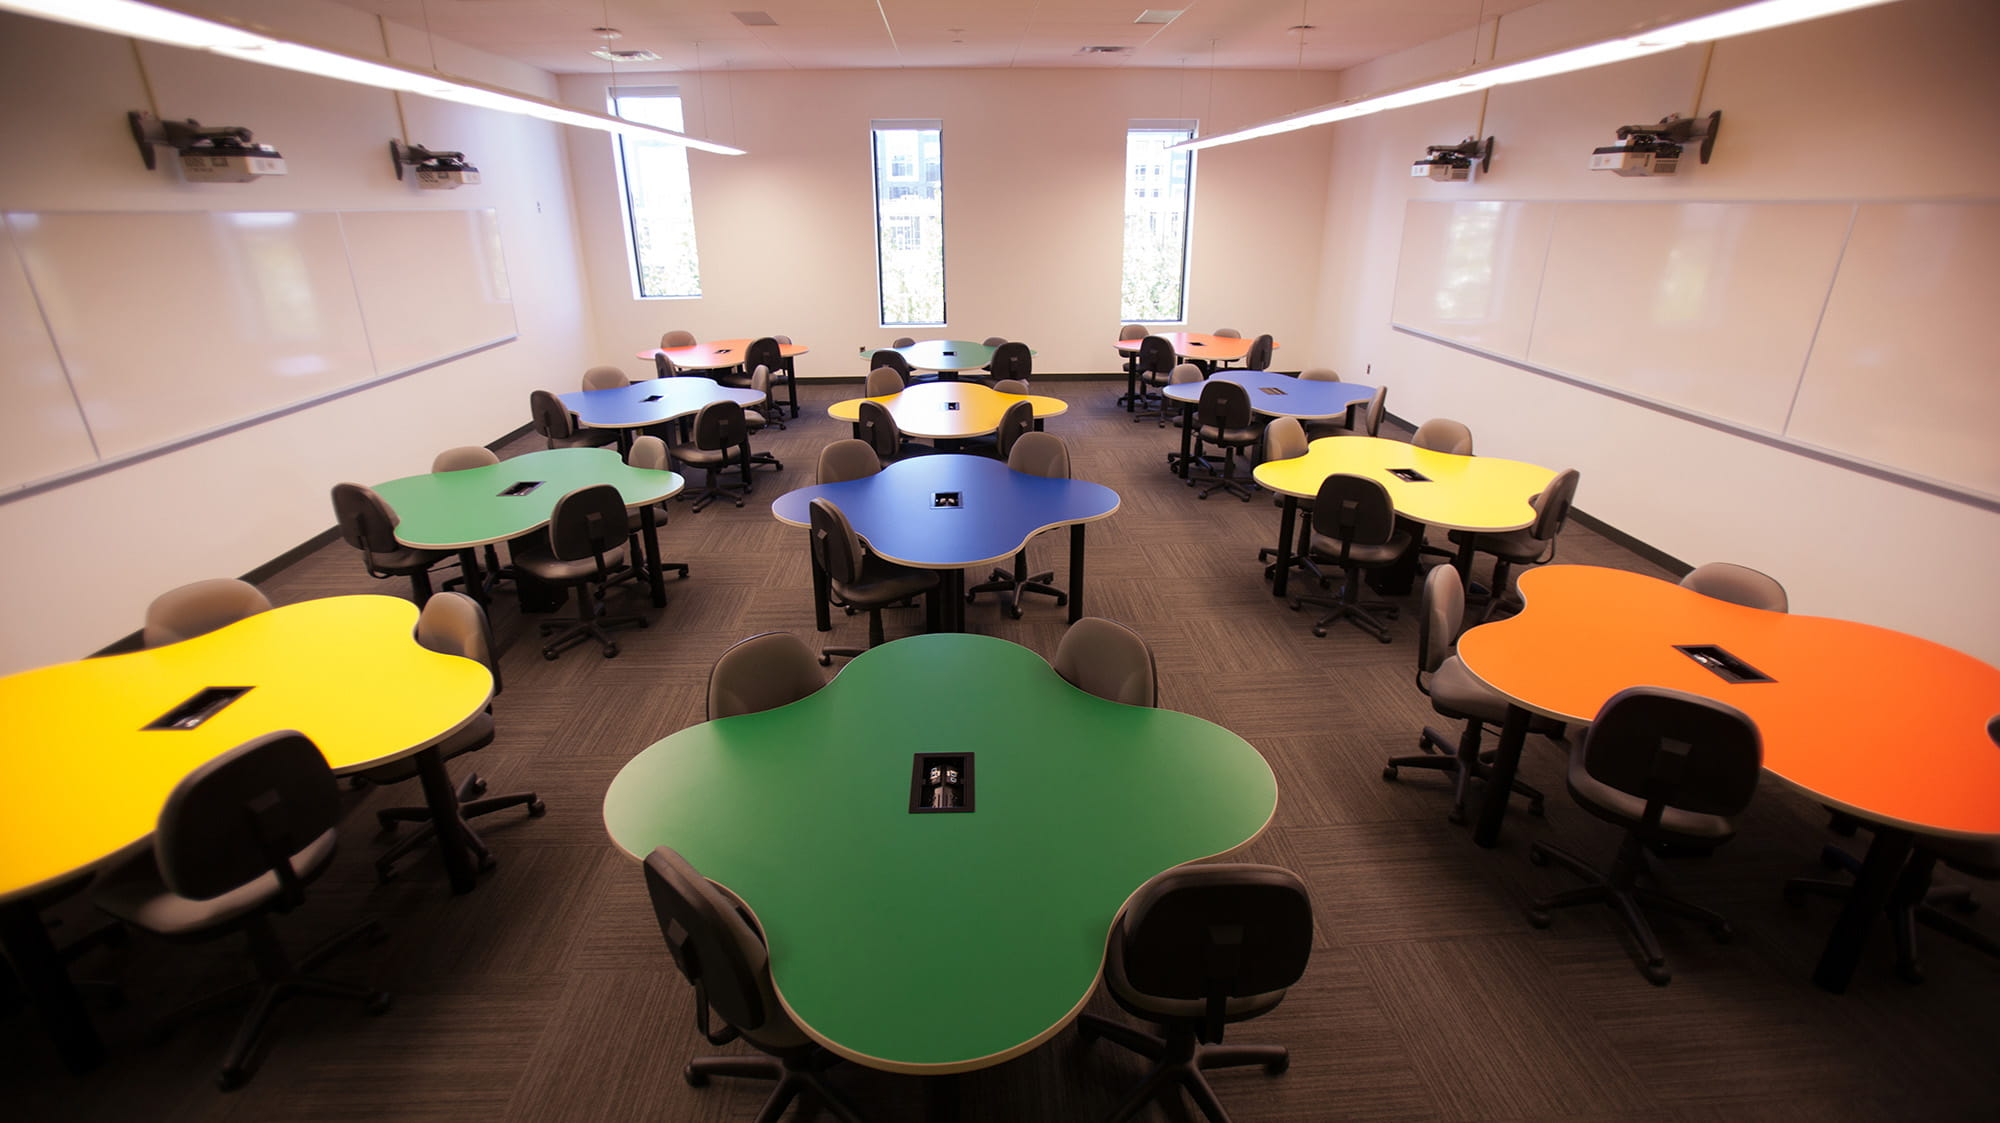 A room with multicoloured amoeba-shaped tables.